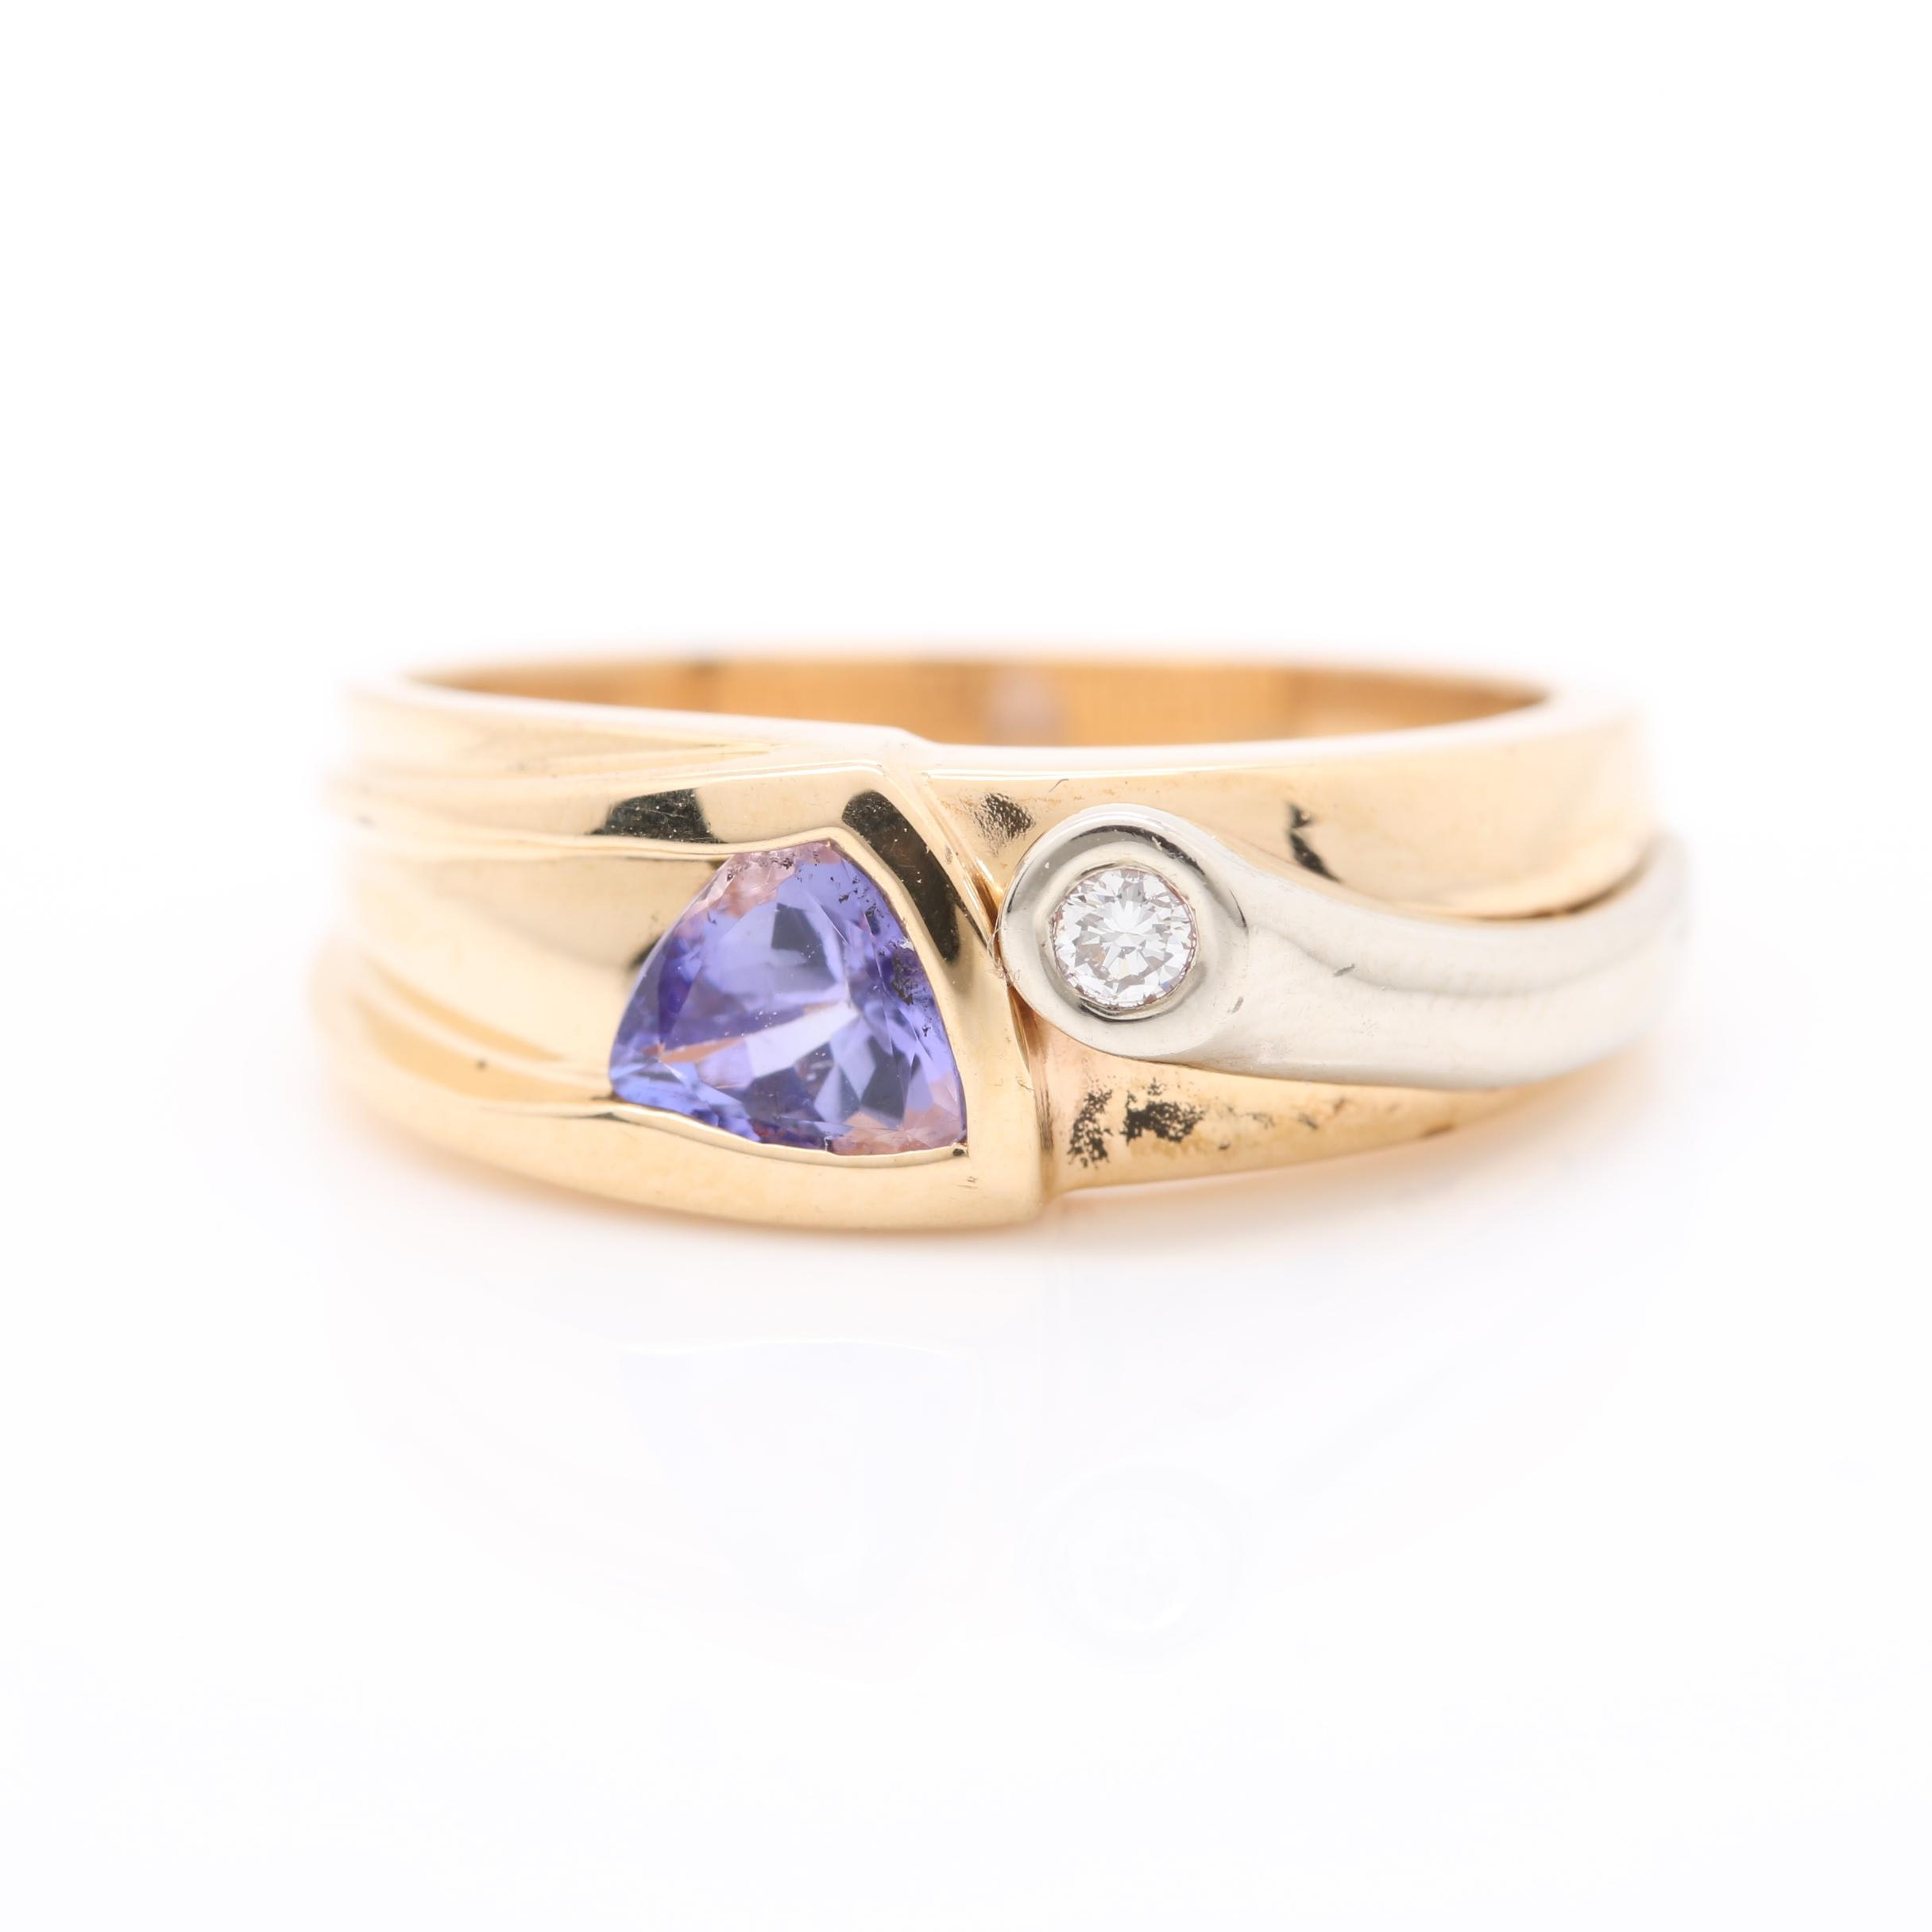 14K Yellow Gold Tanzanite and Diamond Ring with 14K White Gold Accents